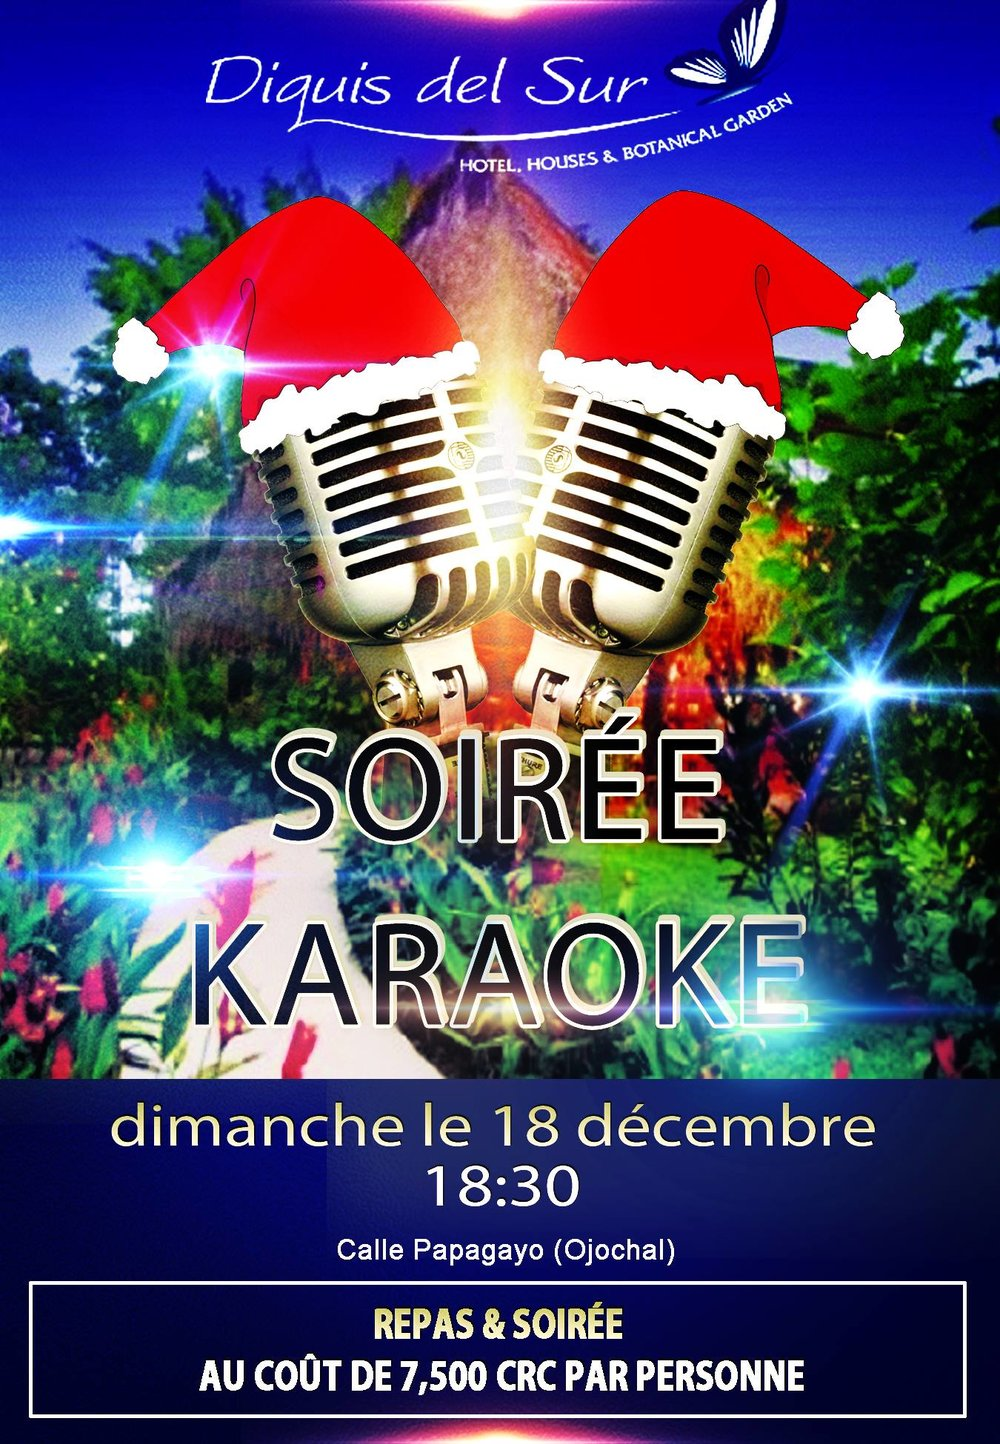 Christmas Karaoke at Diquis Del Sur — Costa Concierge